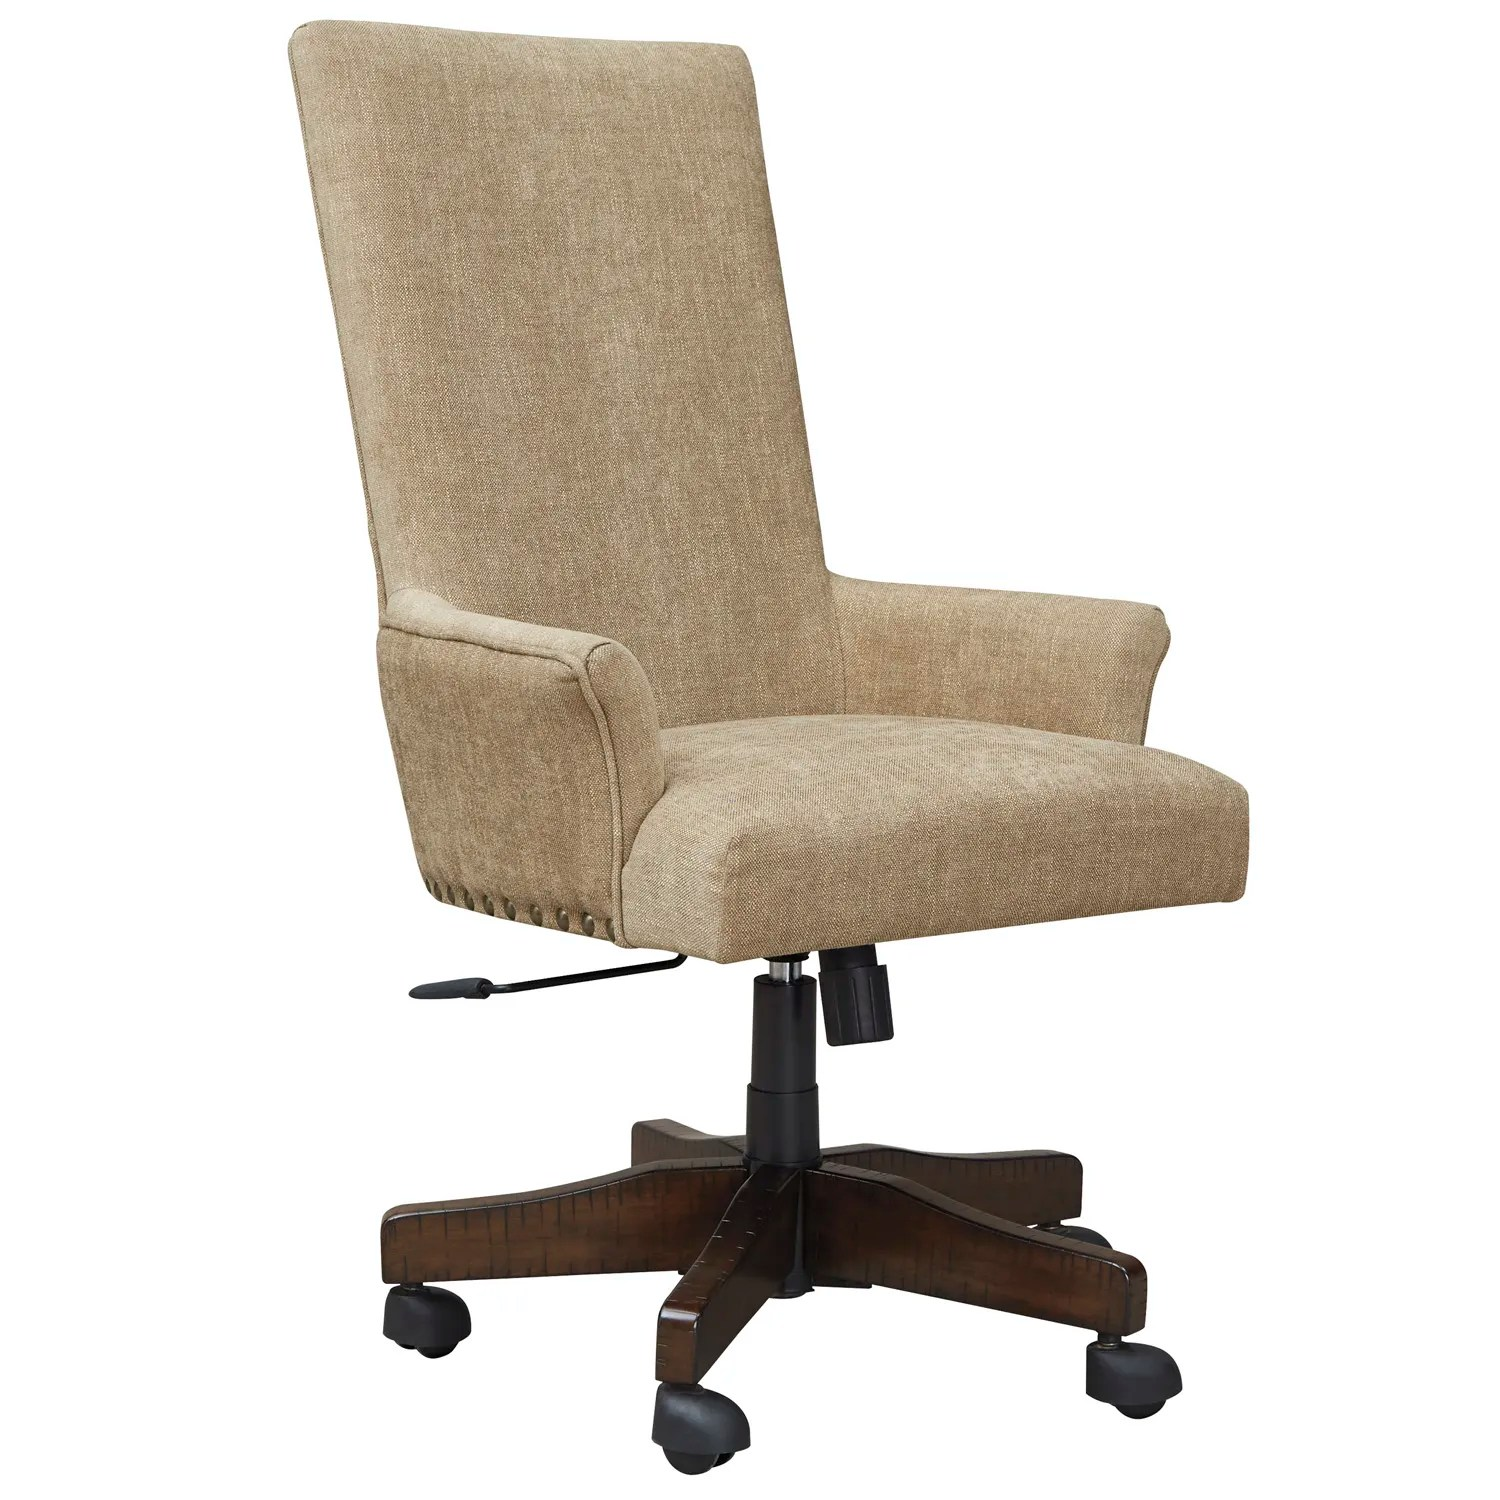 Swivel Desk Chairs Mallard Swivel Desk Chair Best Sellers Office Chairs